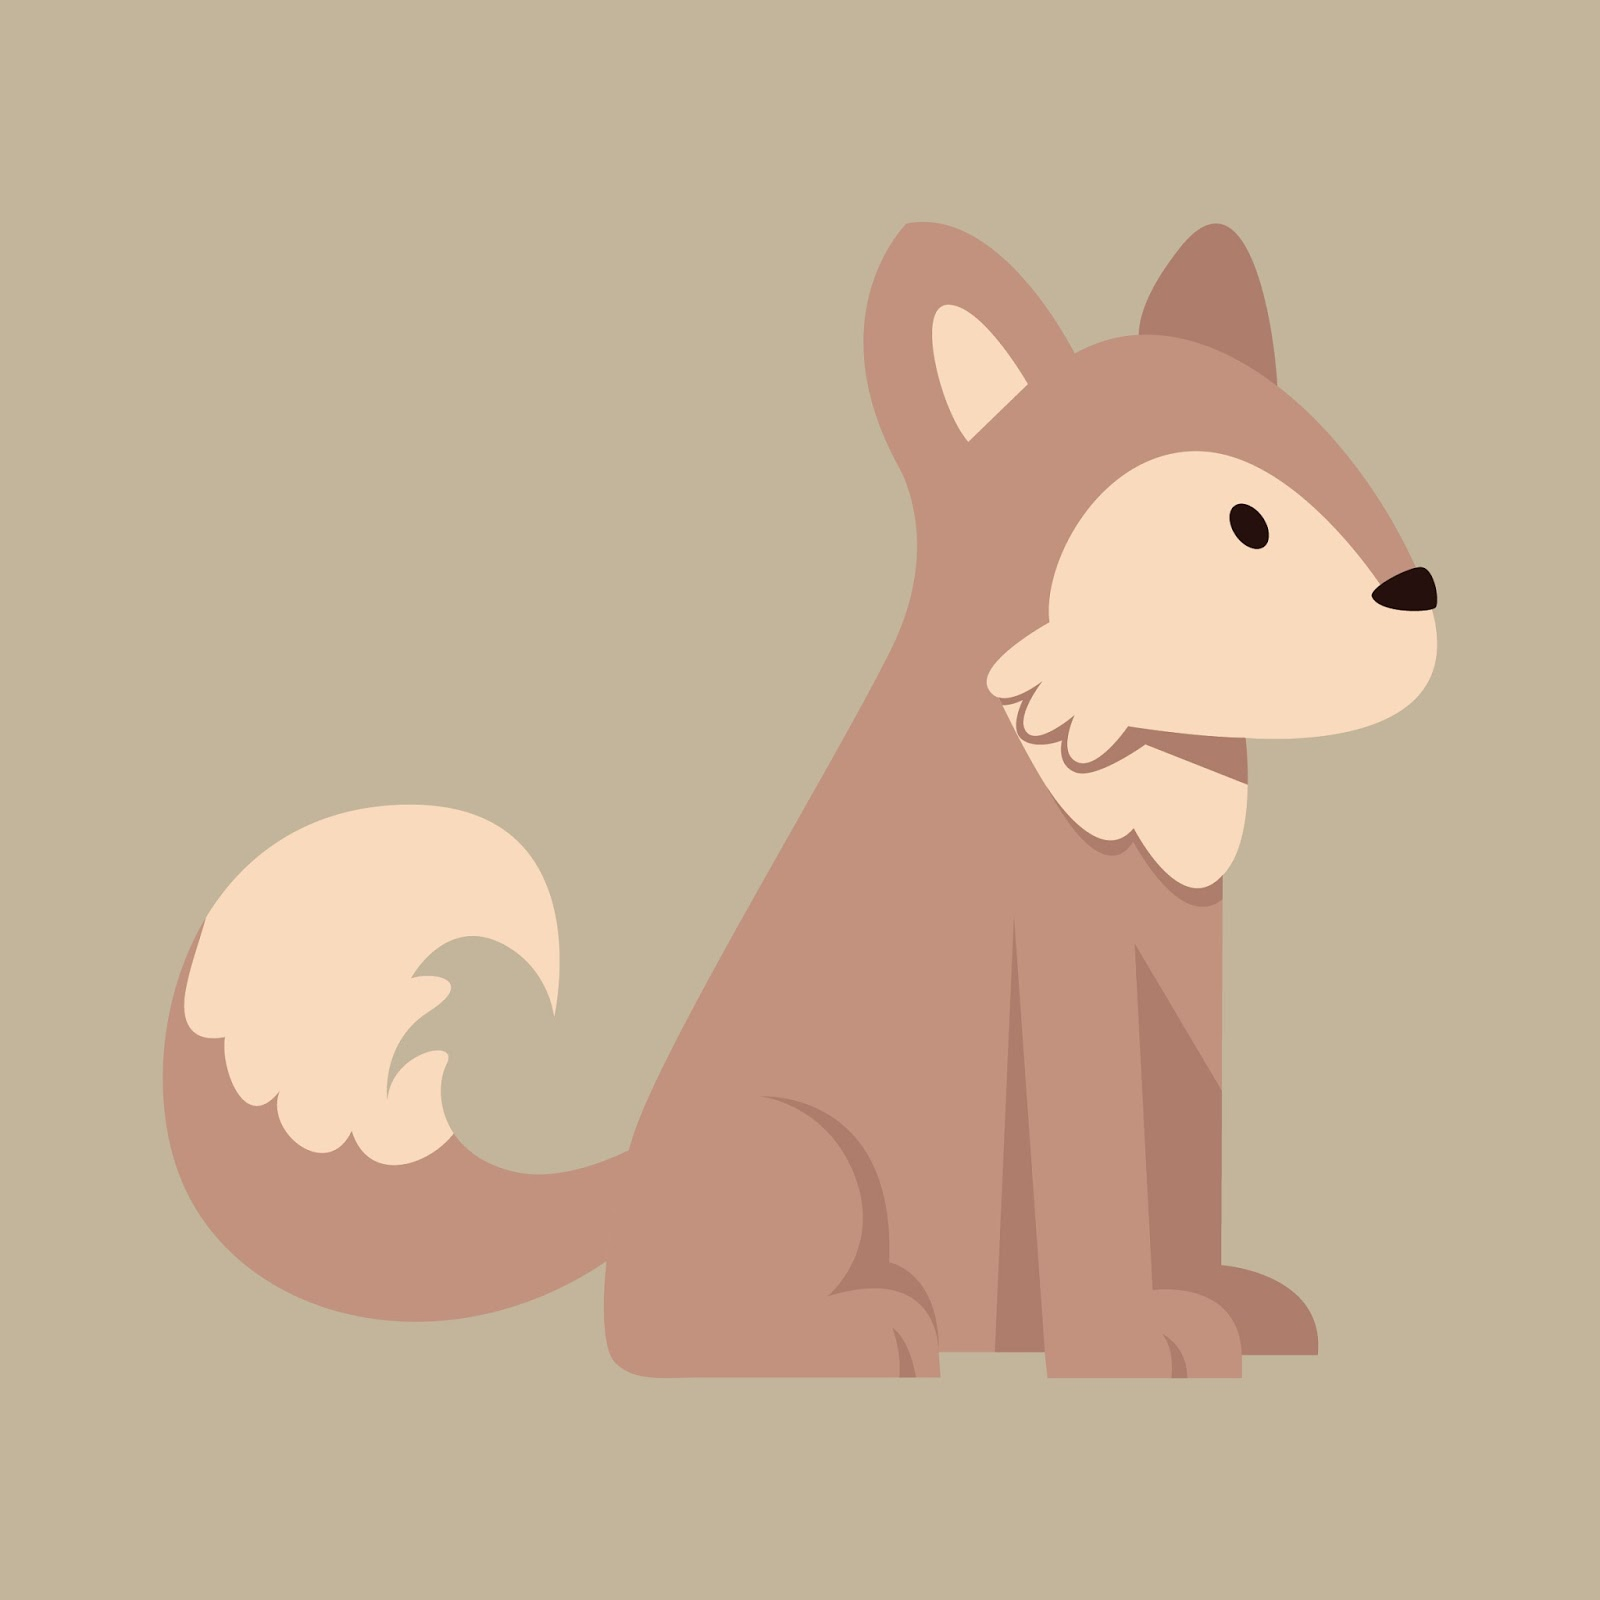 hight resolution of clipart clip art cute dog vector free download husky dog